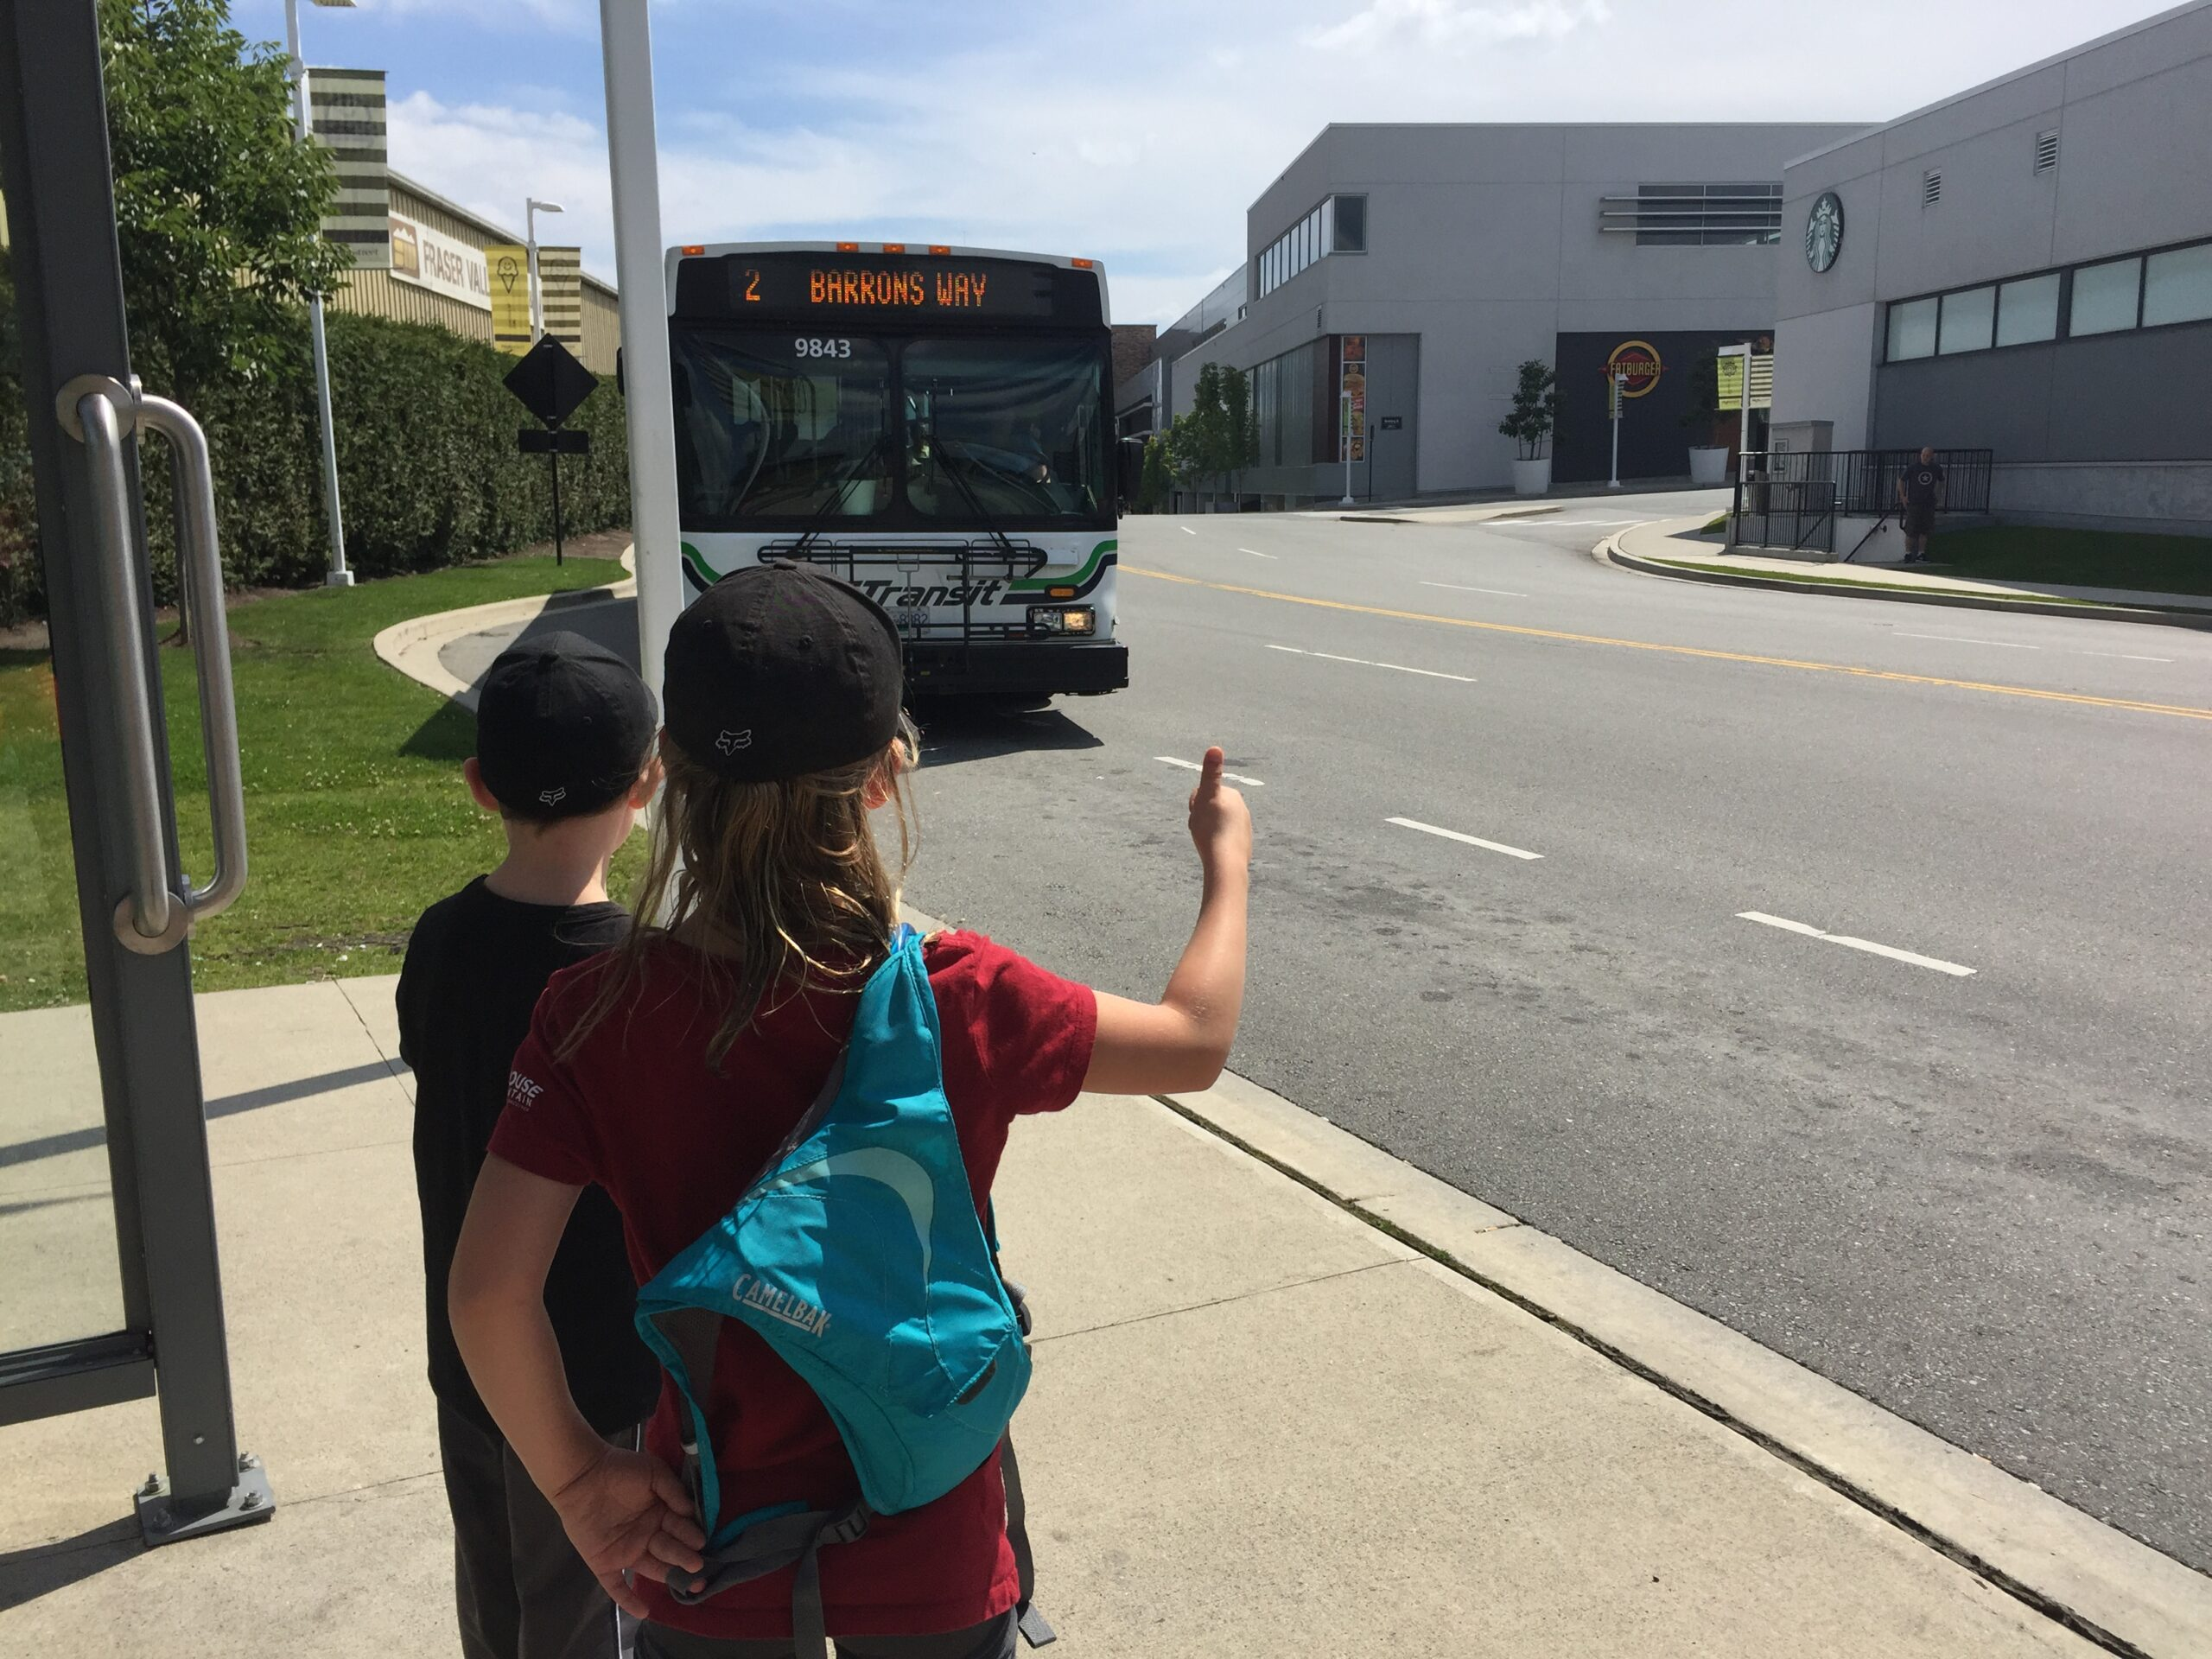 Children 12 and under can now ride for free on B.C. public transit